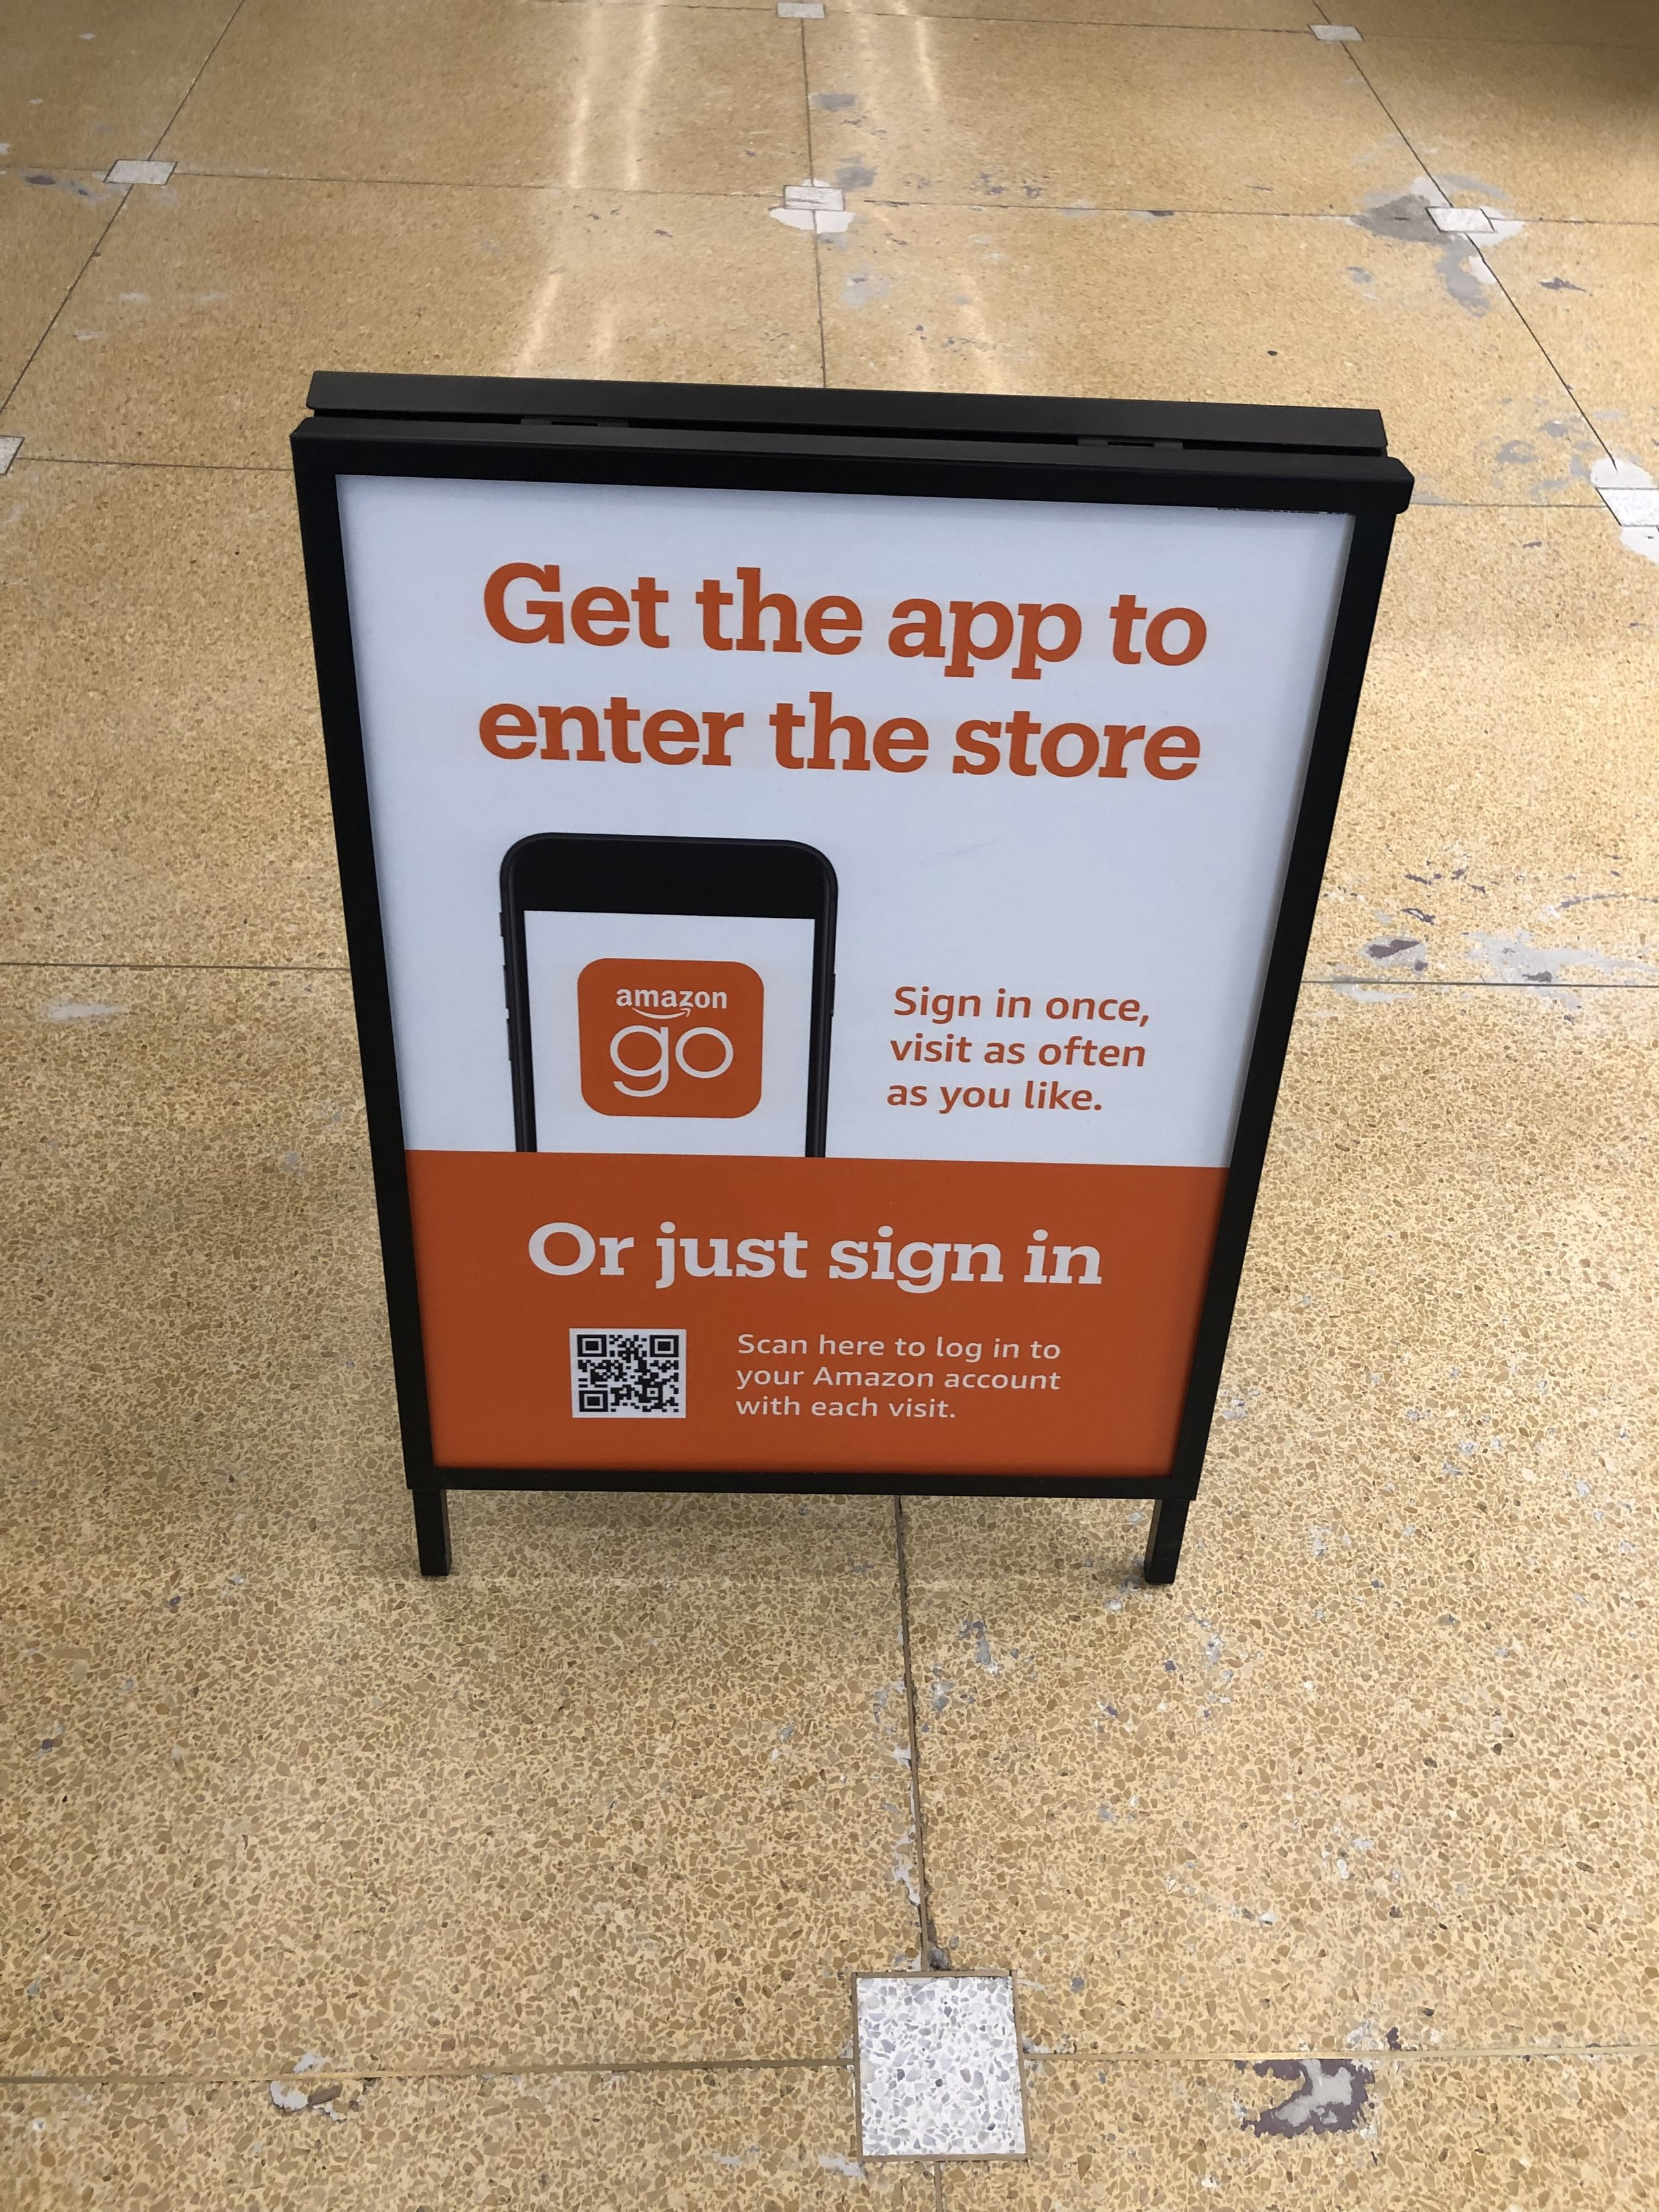 Upon arriving, you have the option of downloading the Amazon Go app, or using the QR code to sign in to Amazon through your mobile browser. I ended up downloading the Amazon Go app because it sends you receipts.